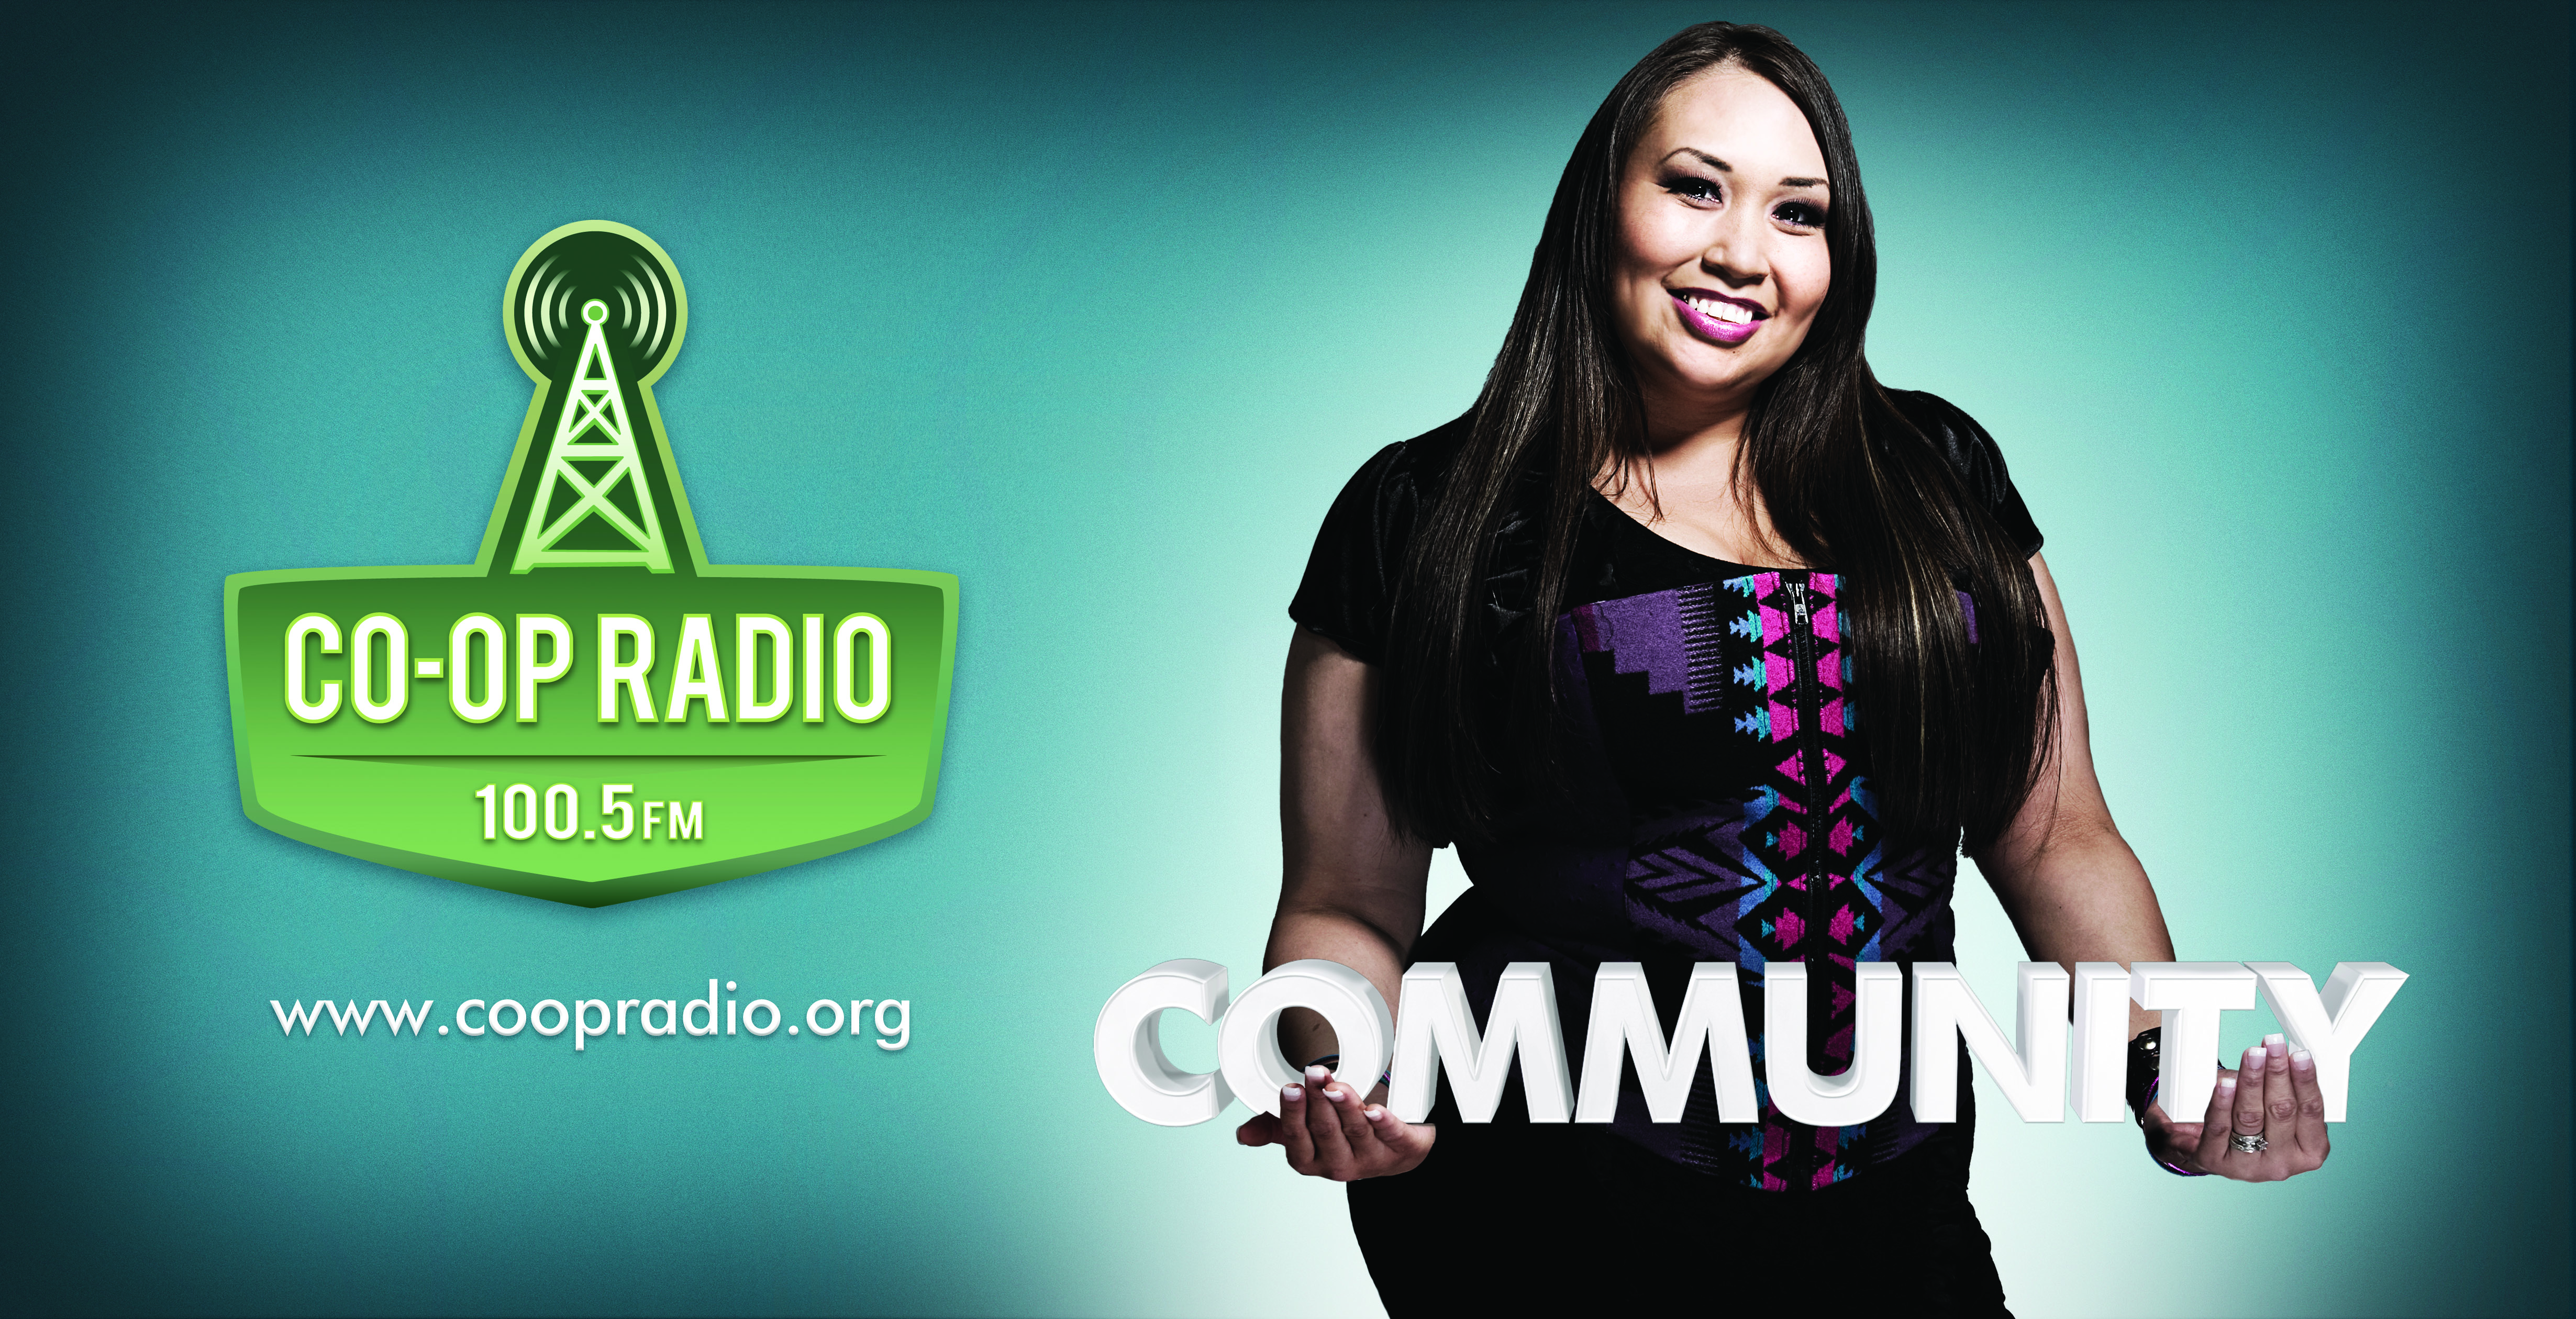 Co-op Radio Ad